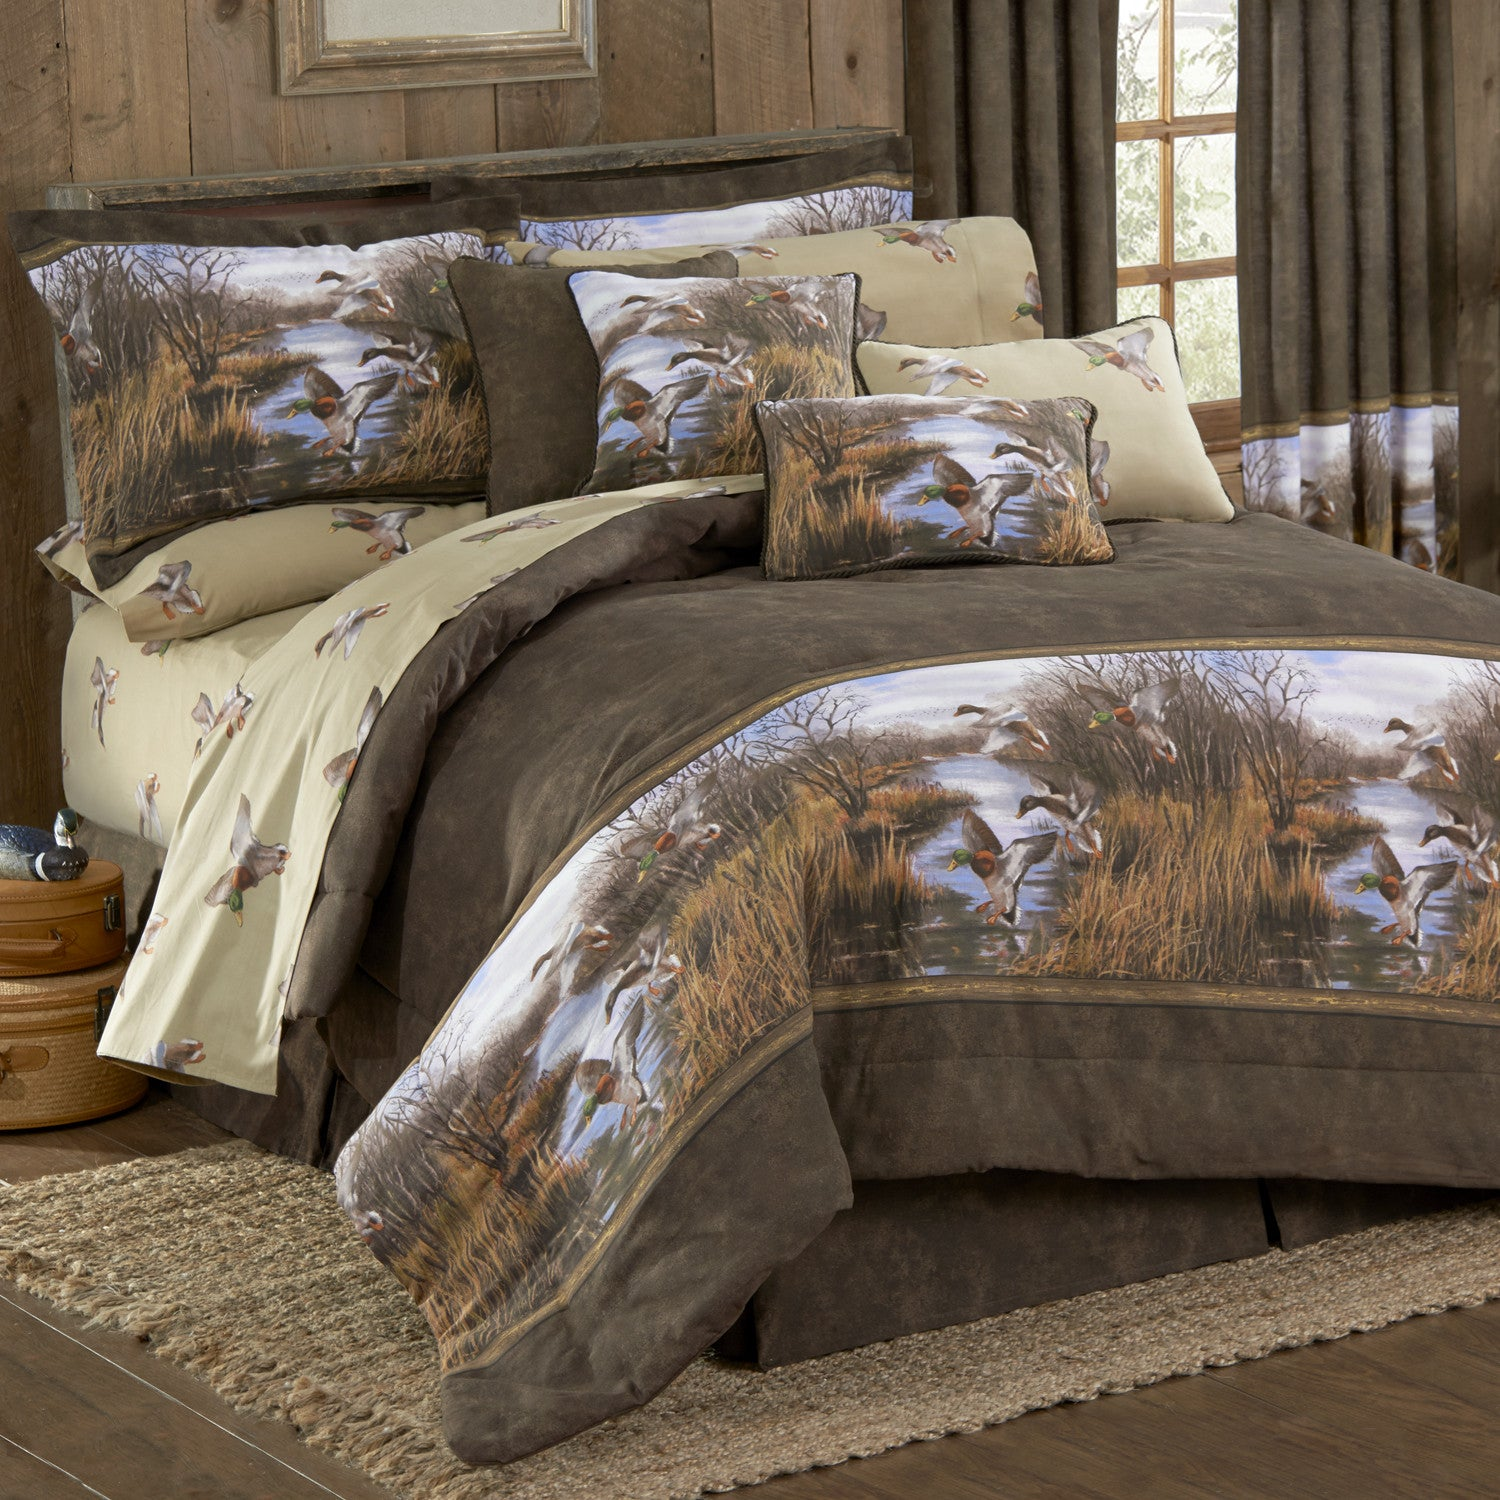 Duck Approach Comforter Set King - Back40Trading2